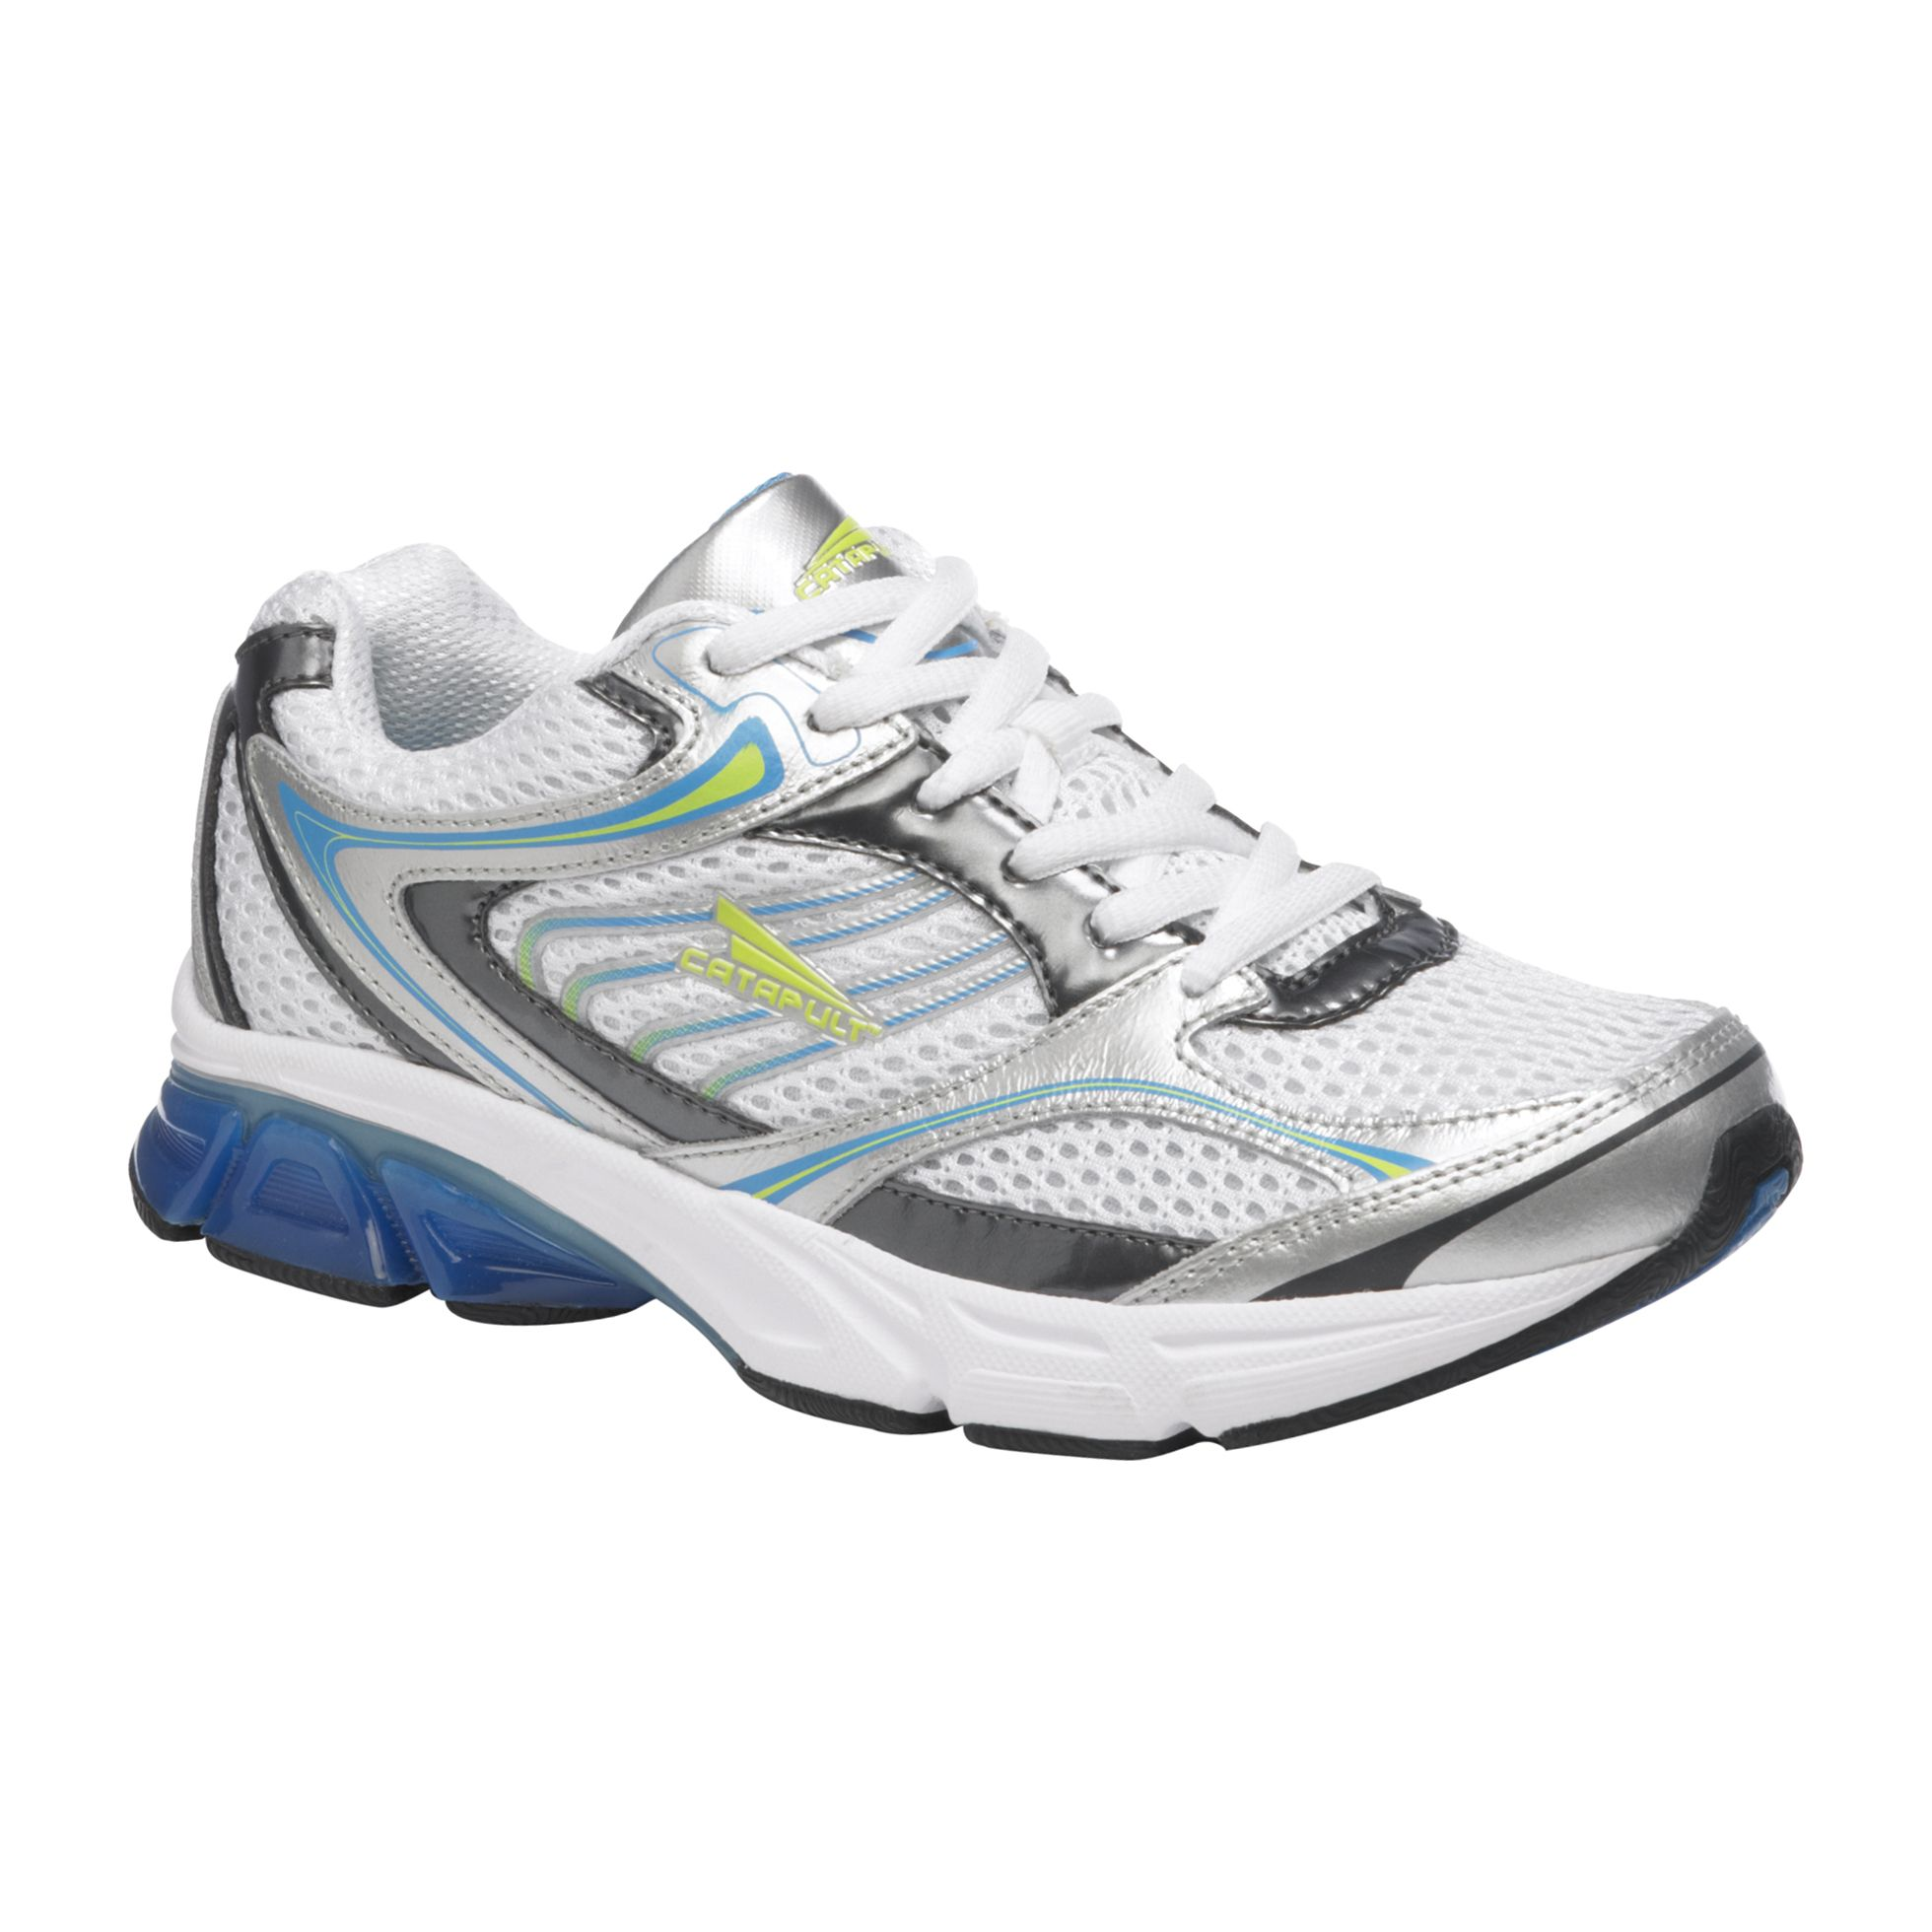 CATAPULT Women s Paula Leather Lace-Up Running Shoe - Blue White Lime